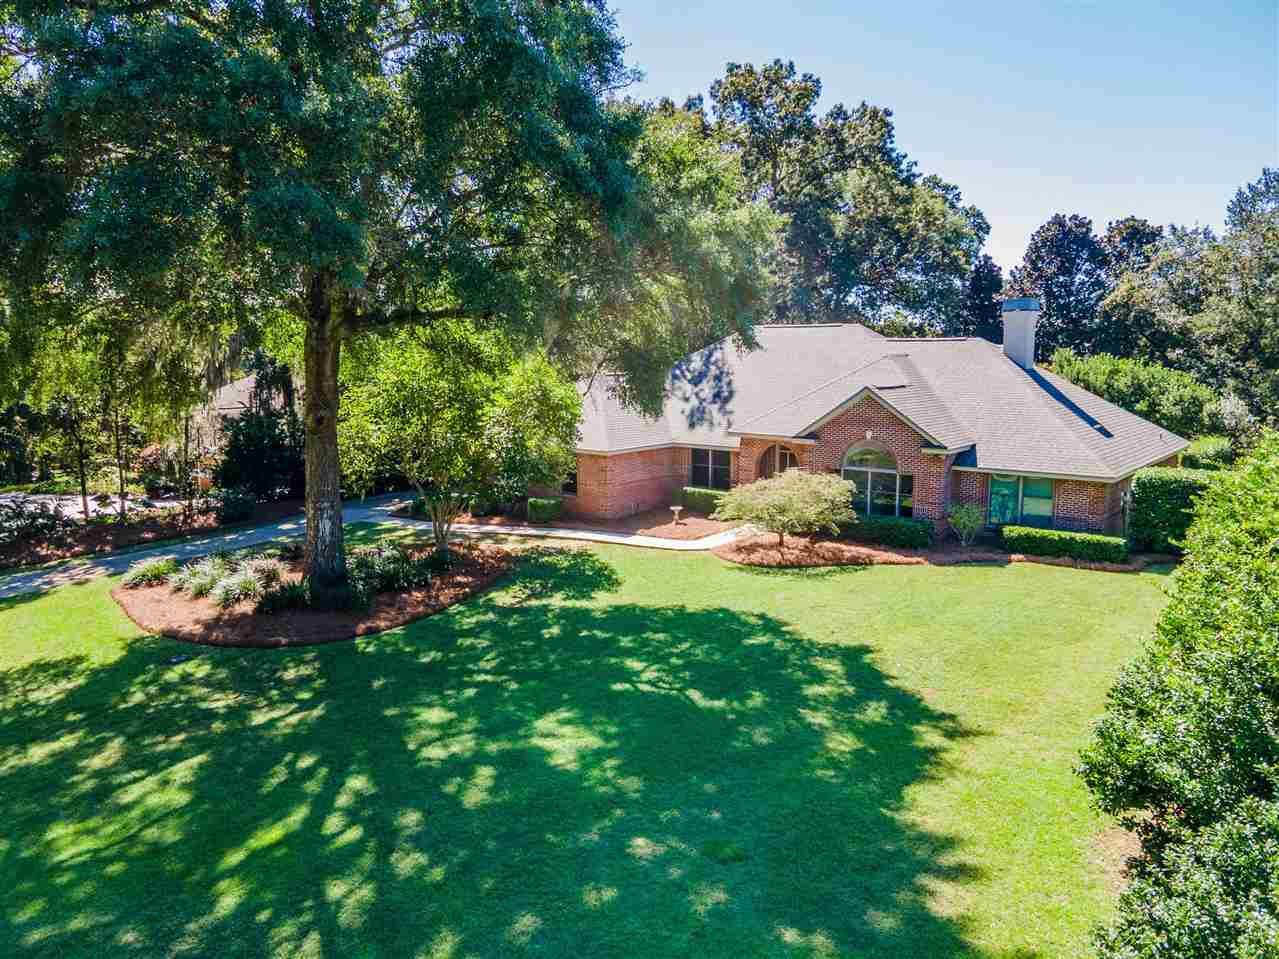 3662 Uncle Glover Road, Tallahassee, FL 32312 - MLS#: 324259